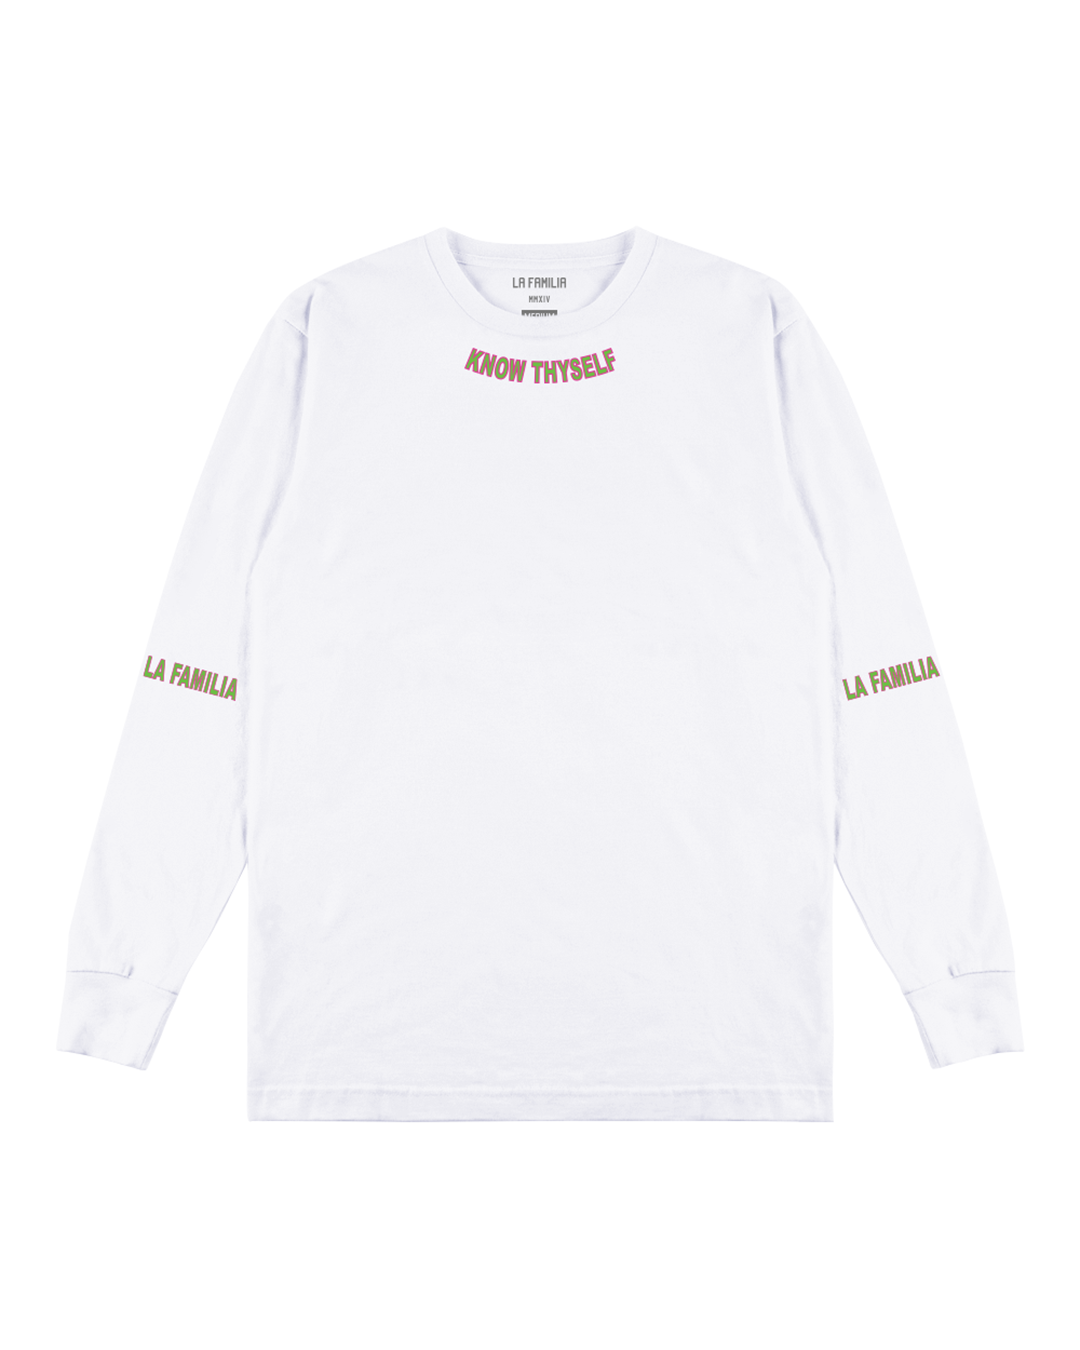 GREEK MOTTO LS TEE - LA FAMILIA WORLDWIDE